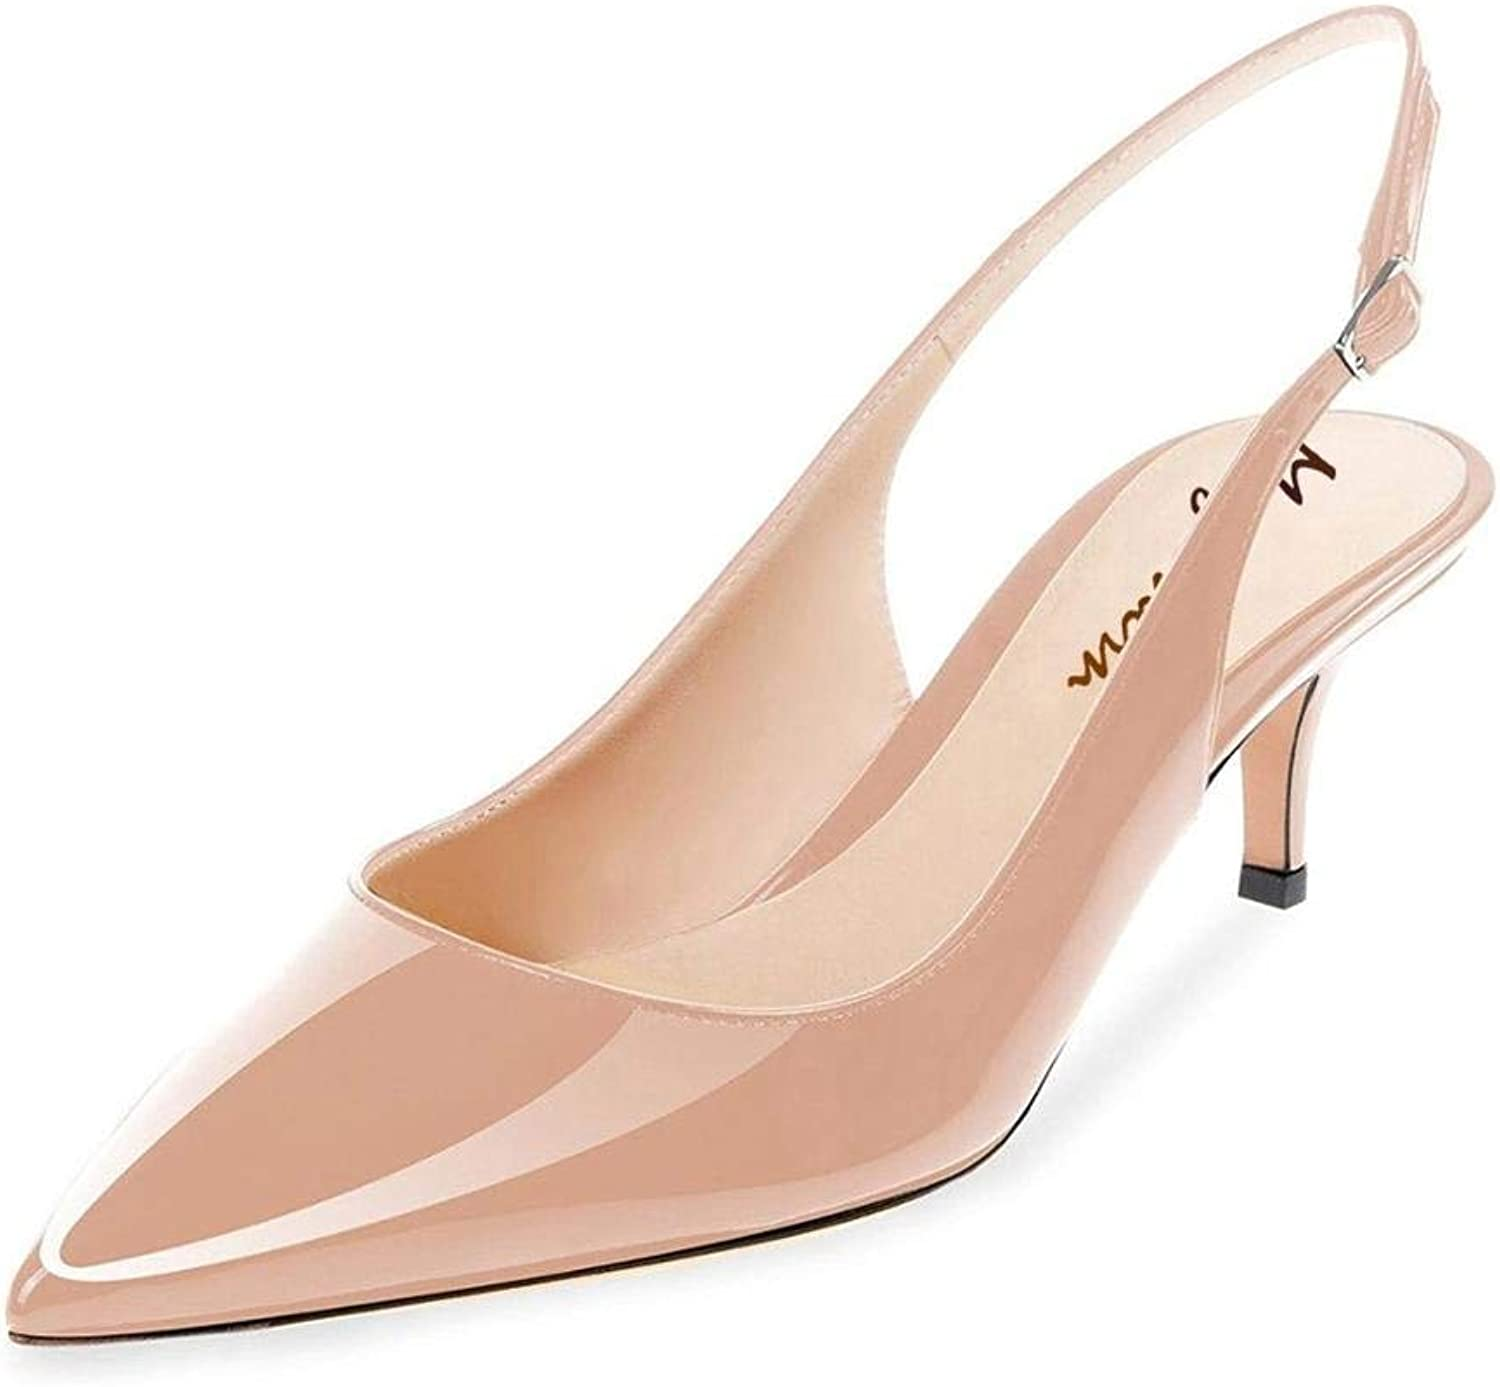 Maguidern Patent Leather Slingback Pumps, Women's Pointed Toe Slingbacks Buckle Ankle Strap Low Heel shoes Nude Size 10